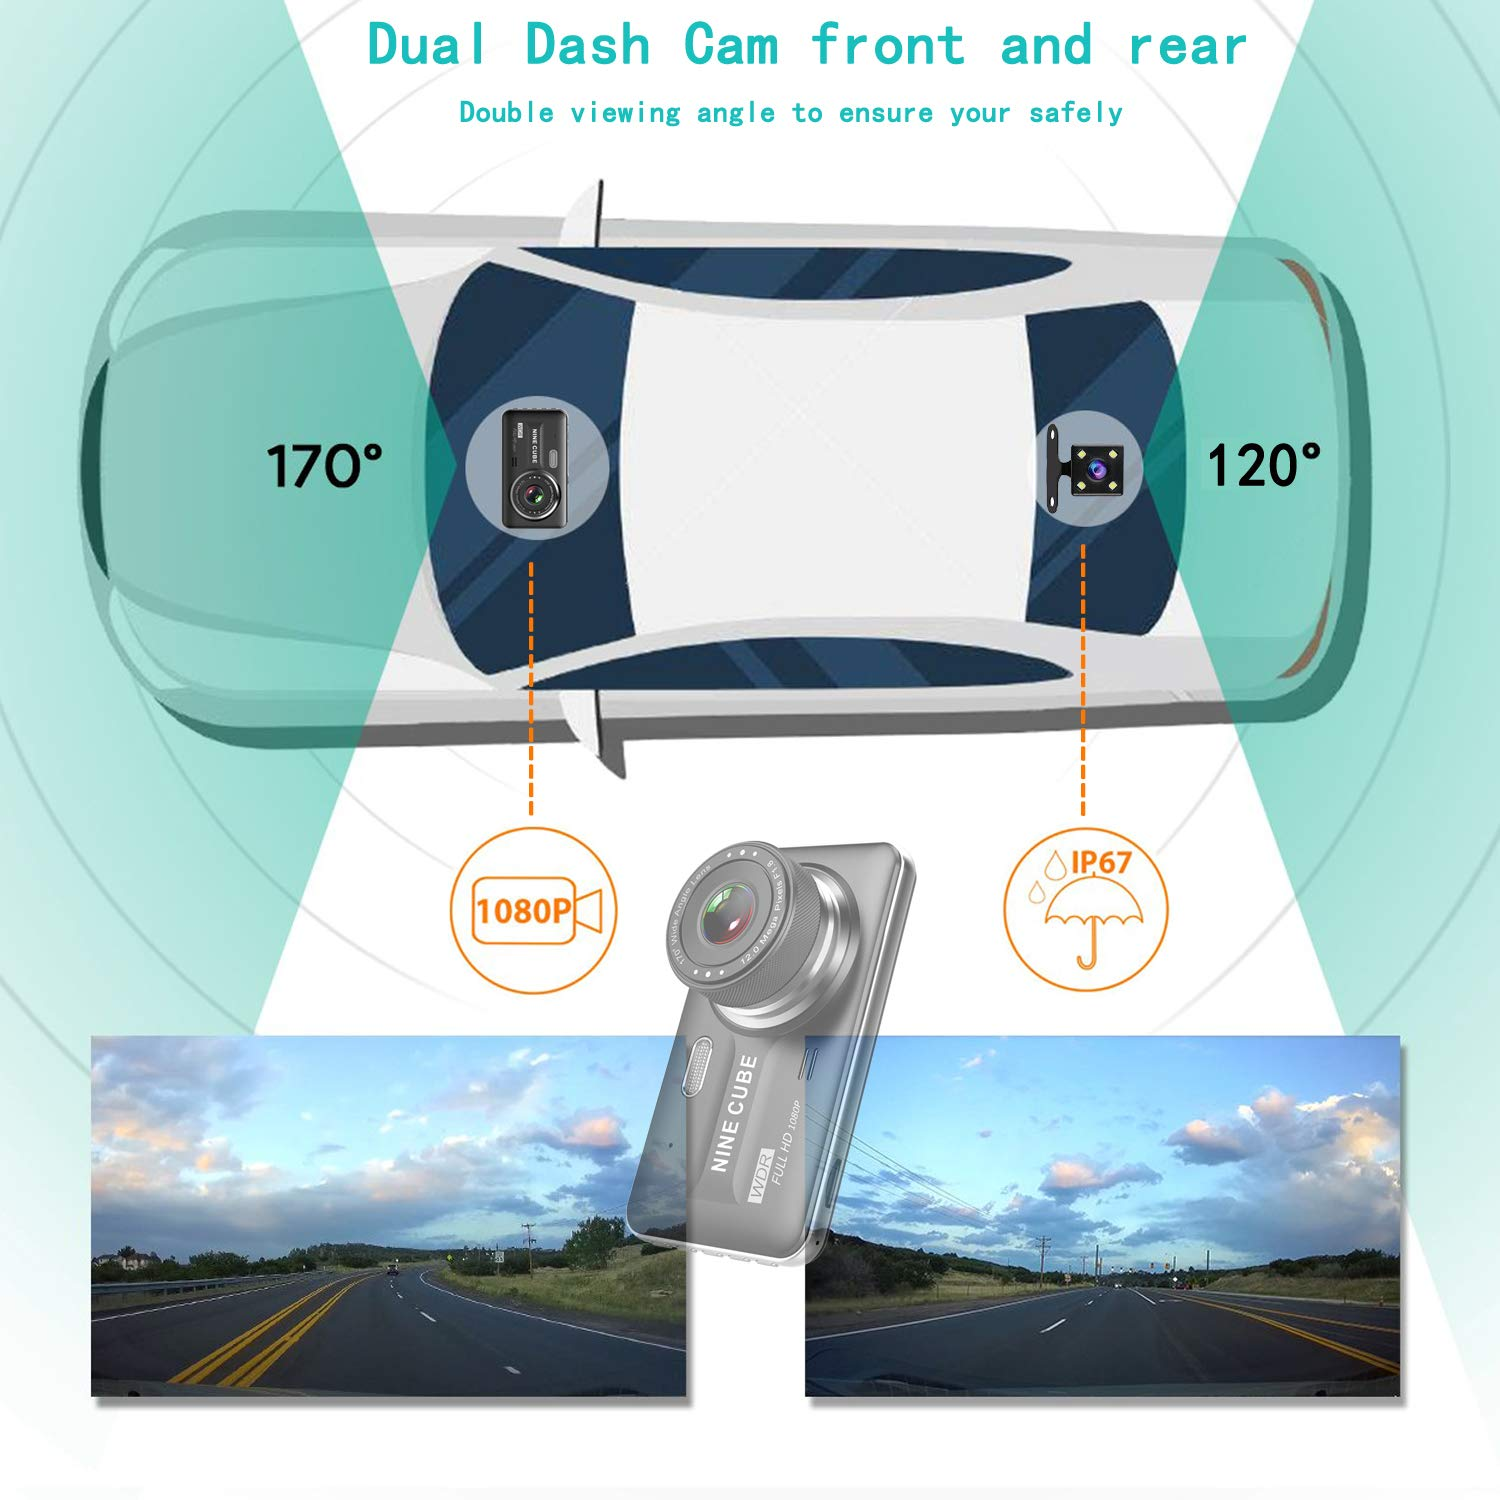 Dual Dash Cam Front and Rear, NINE CUBE 1080p HD Driving Recorder,Car DVR Dashboard Camera, 4'' IPS Screen, 170° Super Wide Angle, G Sensor, Loop Recording, Parking Monitor, Motion Detection by NINE CUBE (Image #3)